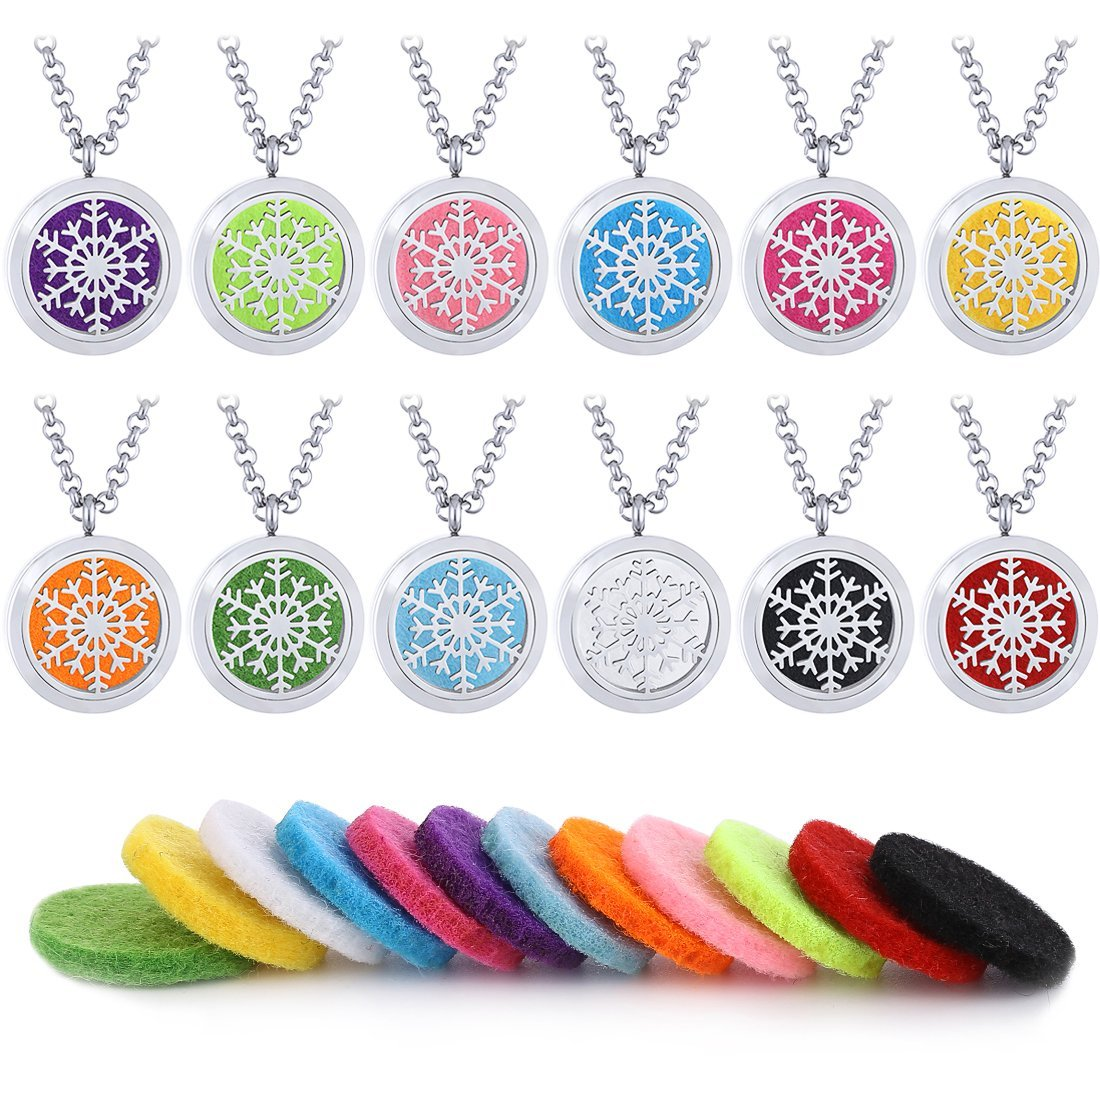 Mecoo 316L Stainless Steel Snowflake Necklace Aromatherapy Essential Oil Diffuser Pendant 12 Colorful Felt Pads by ME COO